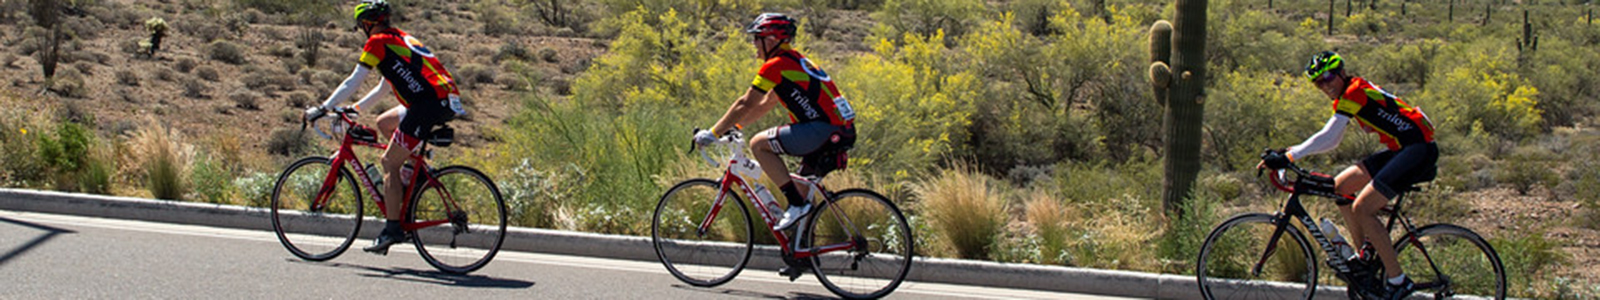 2018 AZA Bike MS Arizona banner image